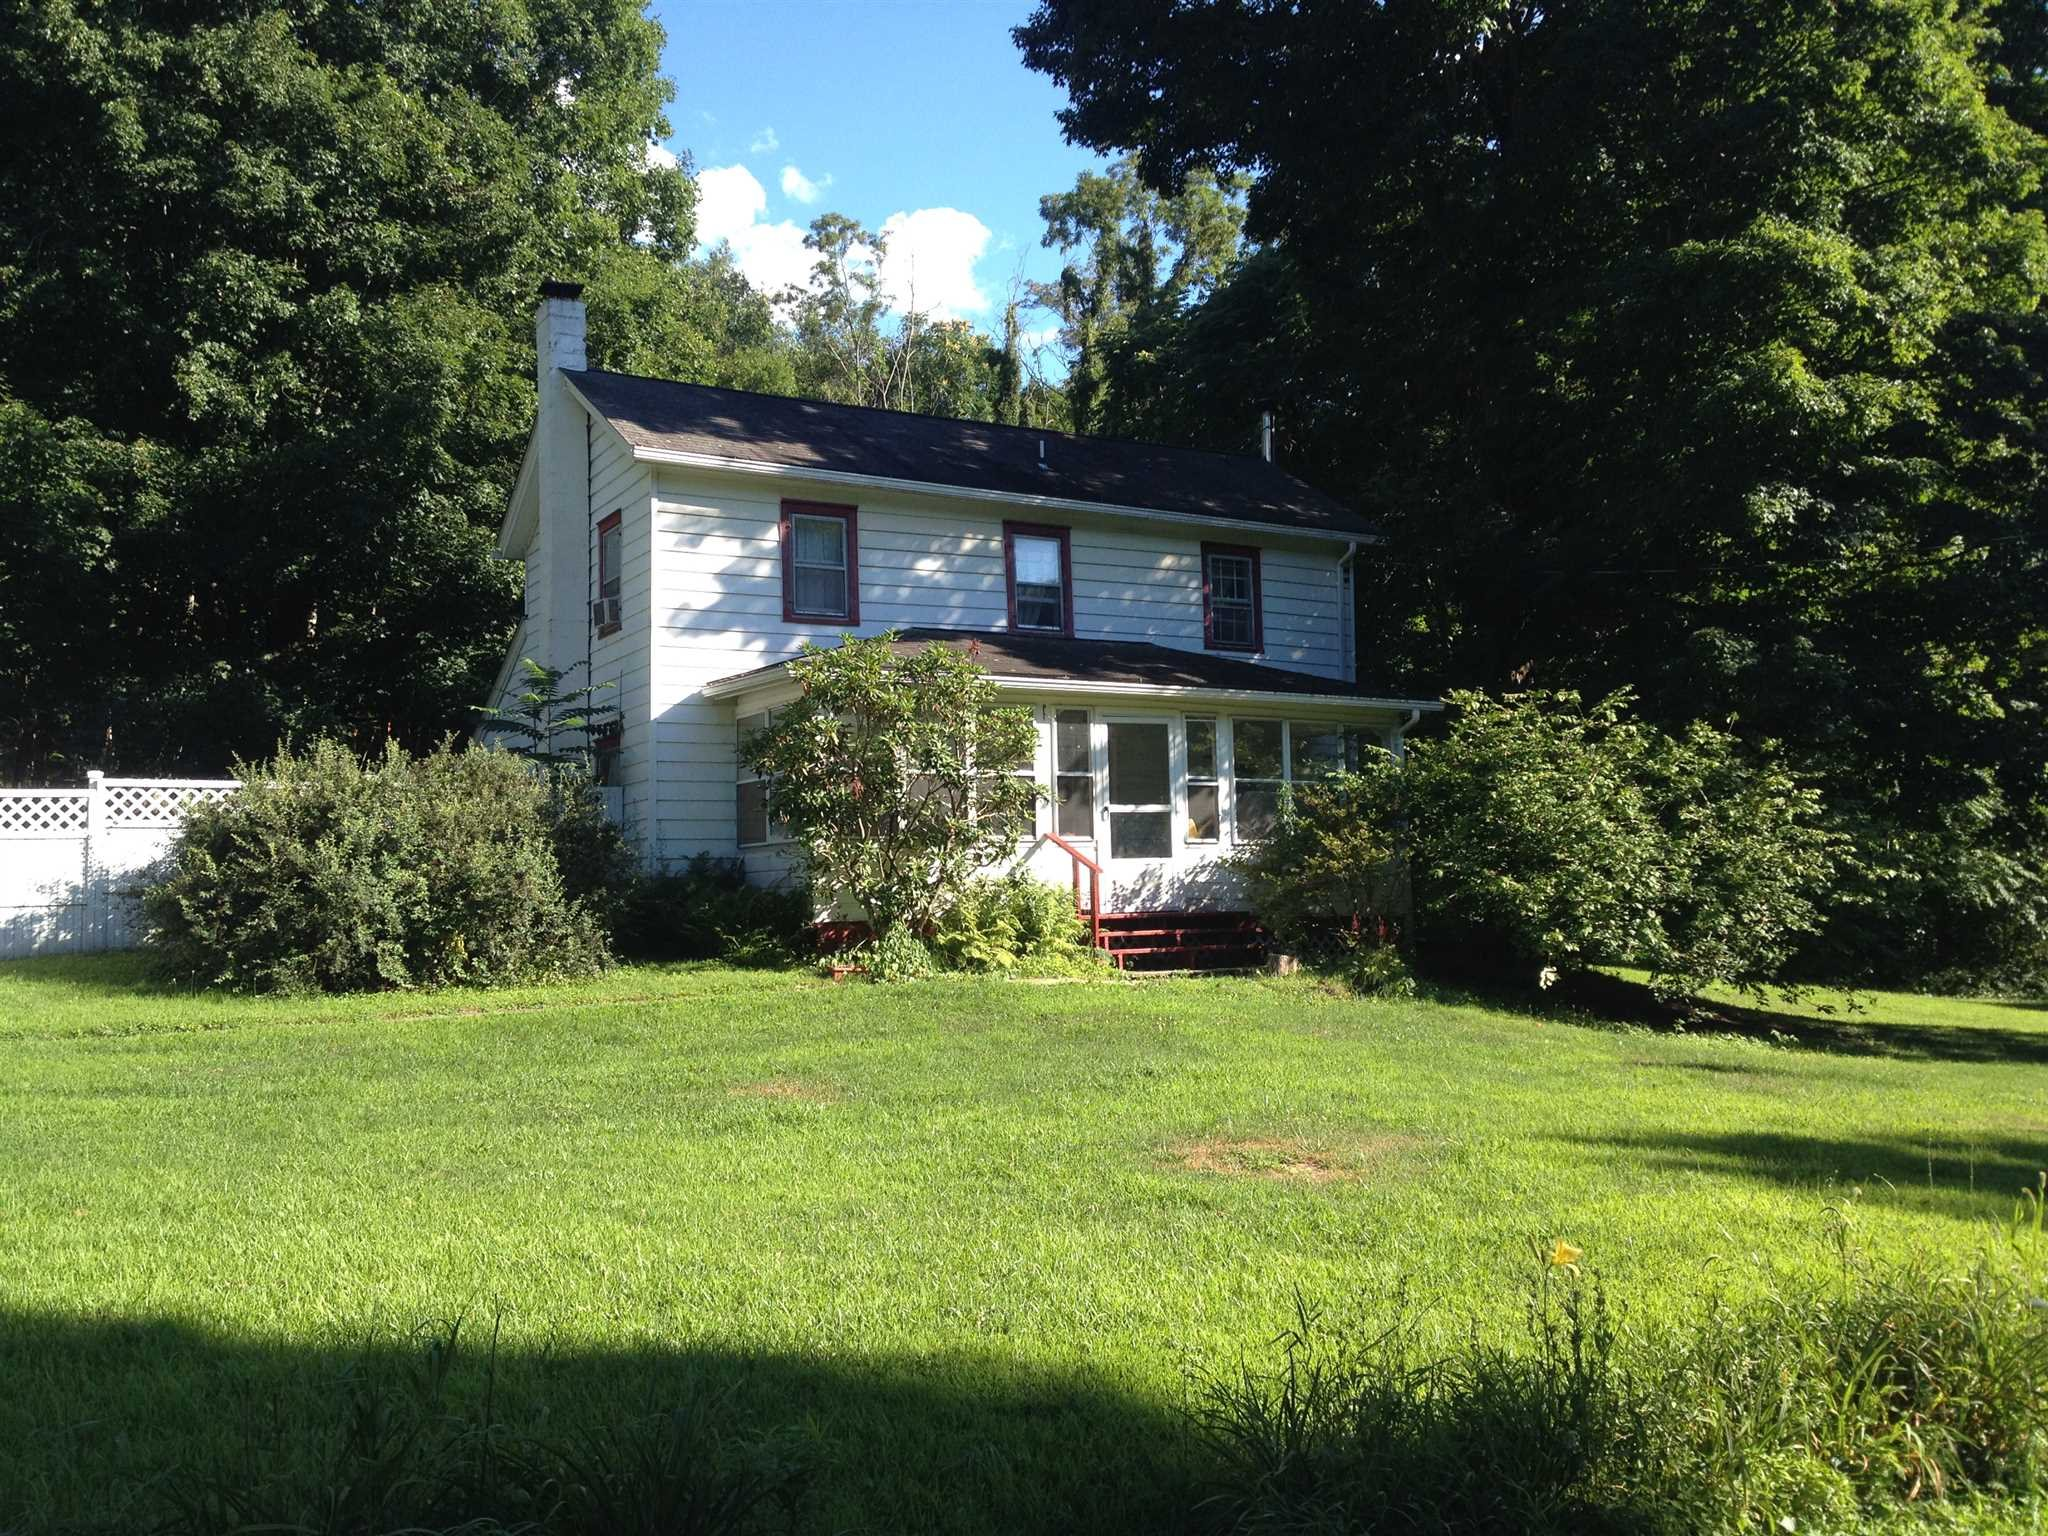 Single Family Home for Sale at 132 HUNNS LAKE ROAD 132 HUNNS LAKE ROAD Stanfordville, New York 12581 United States